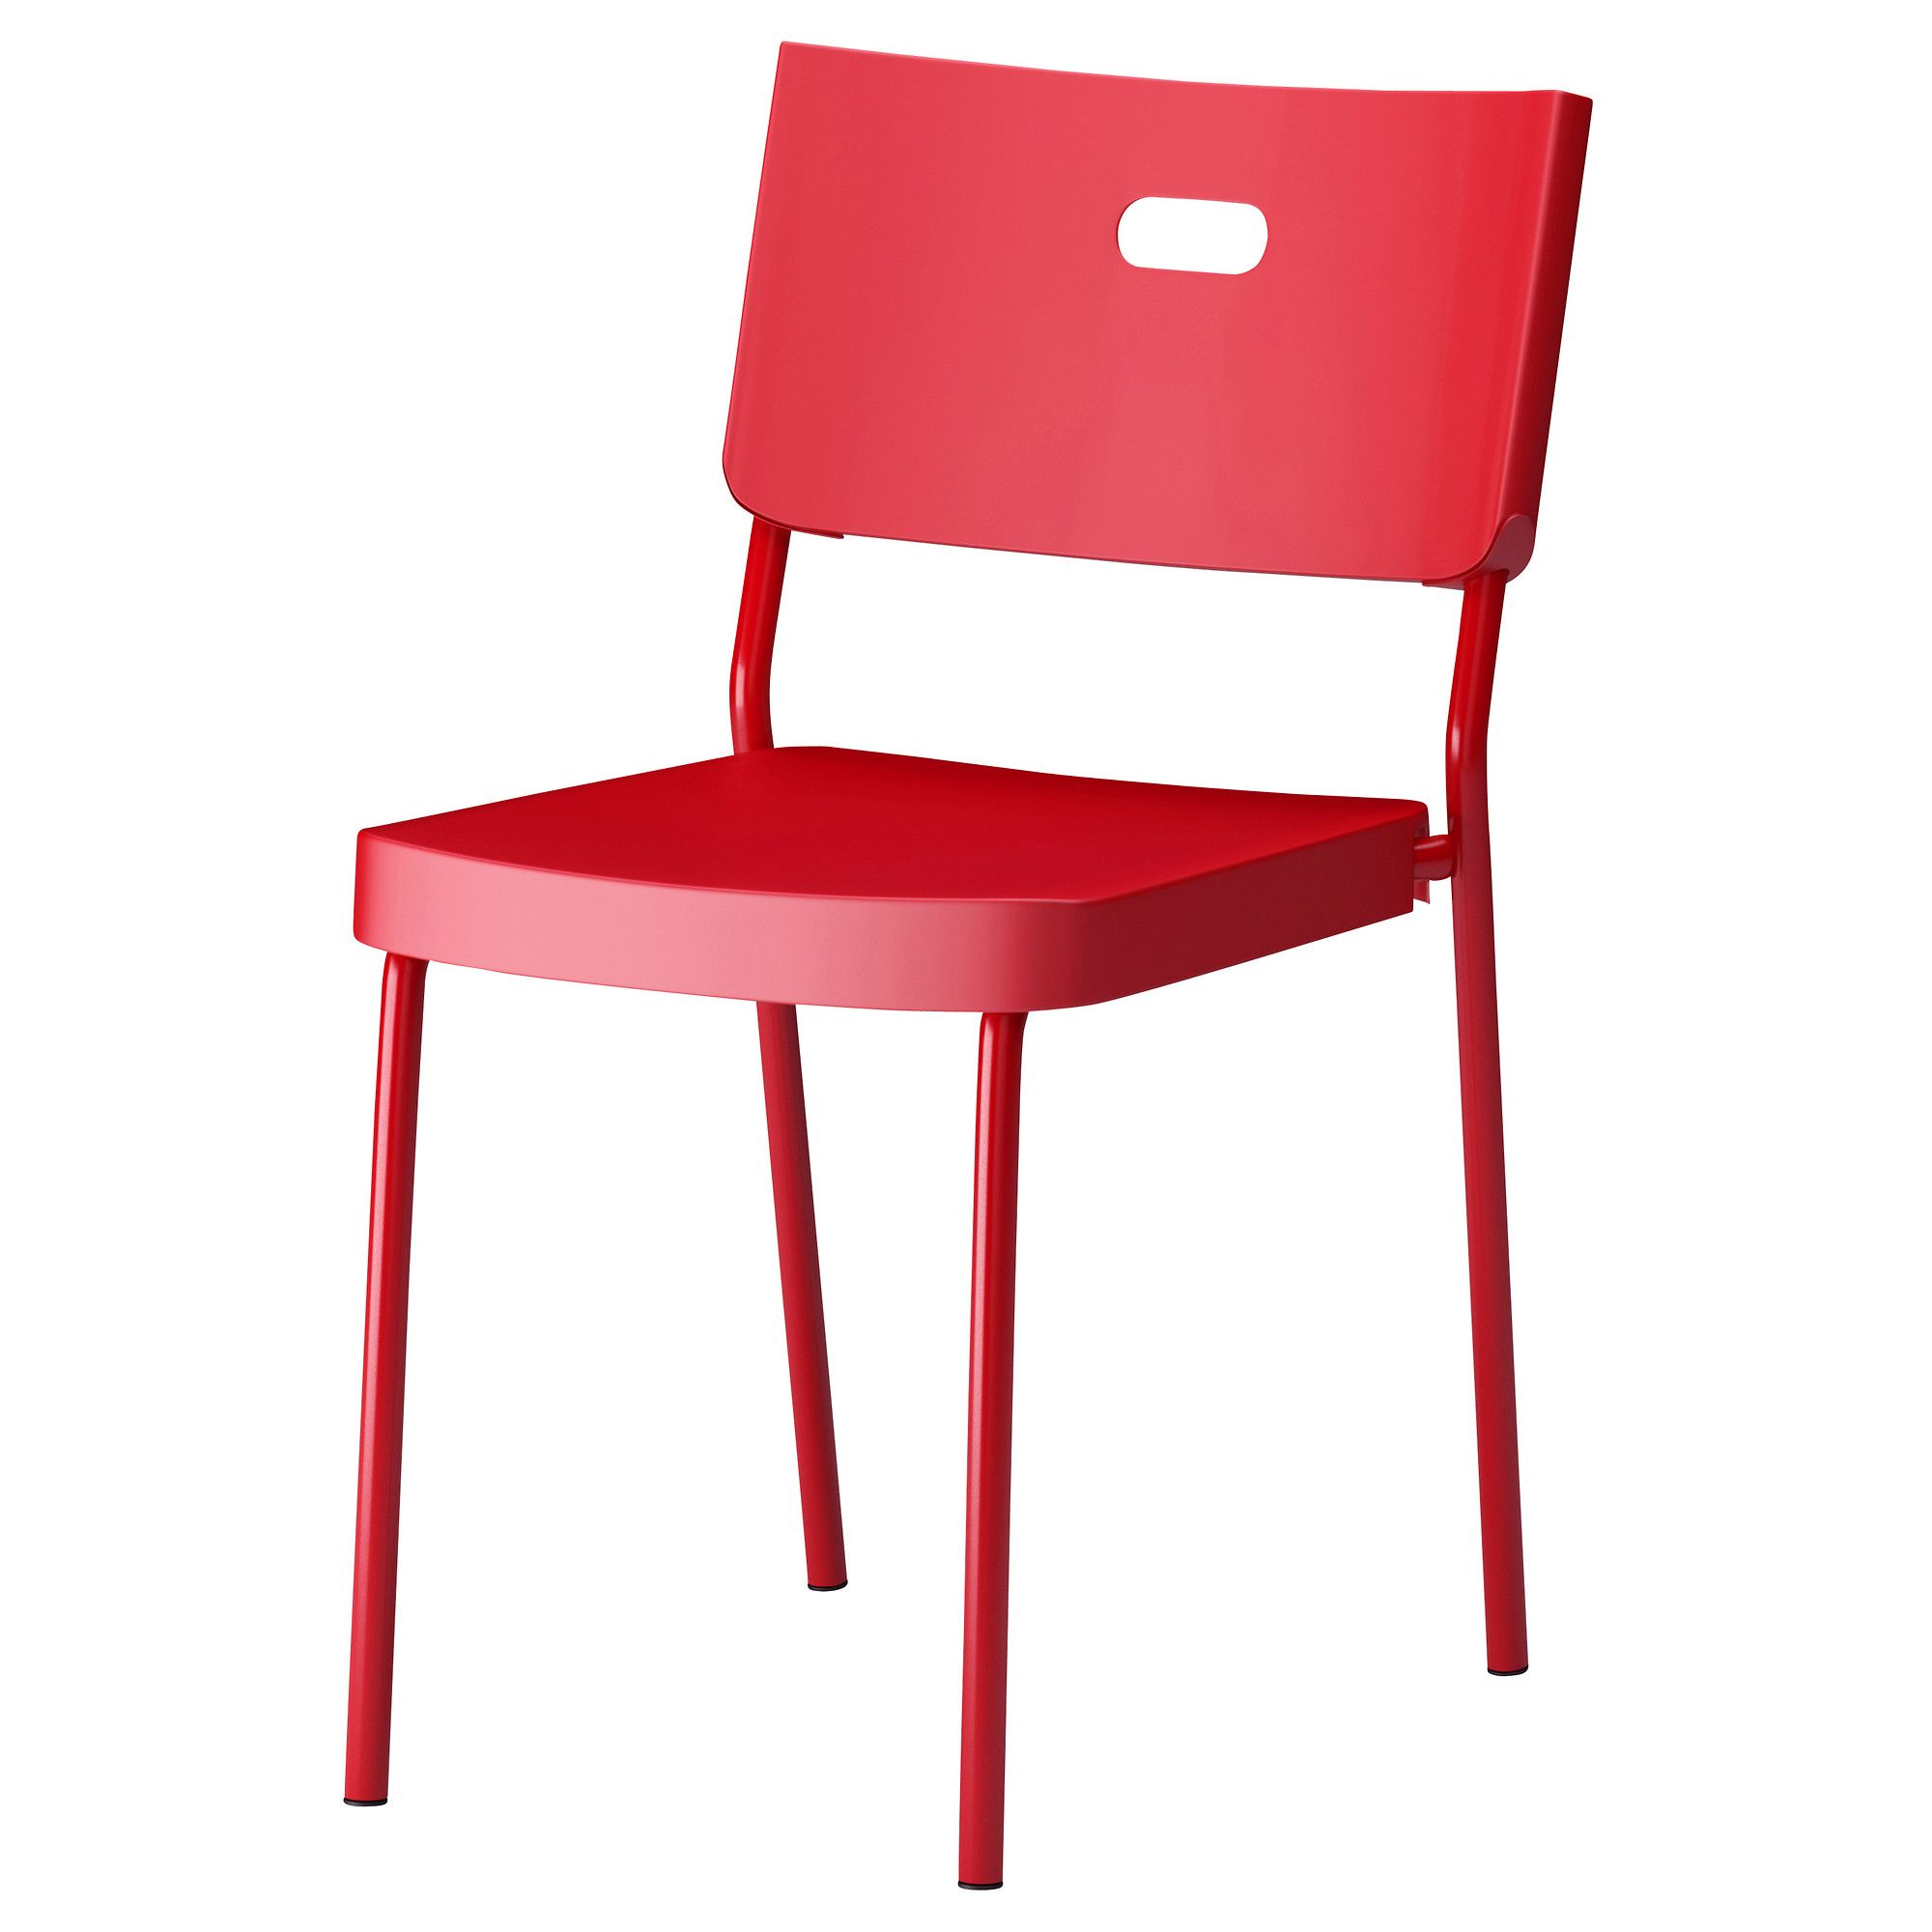 Wondrous Ikea Plastic Dining Chairs Loris Decoration Lamtechconsult Wood Chair Design Ideas Lamtechconsultcom